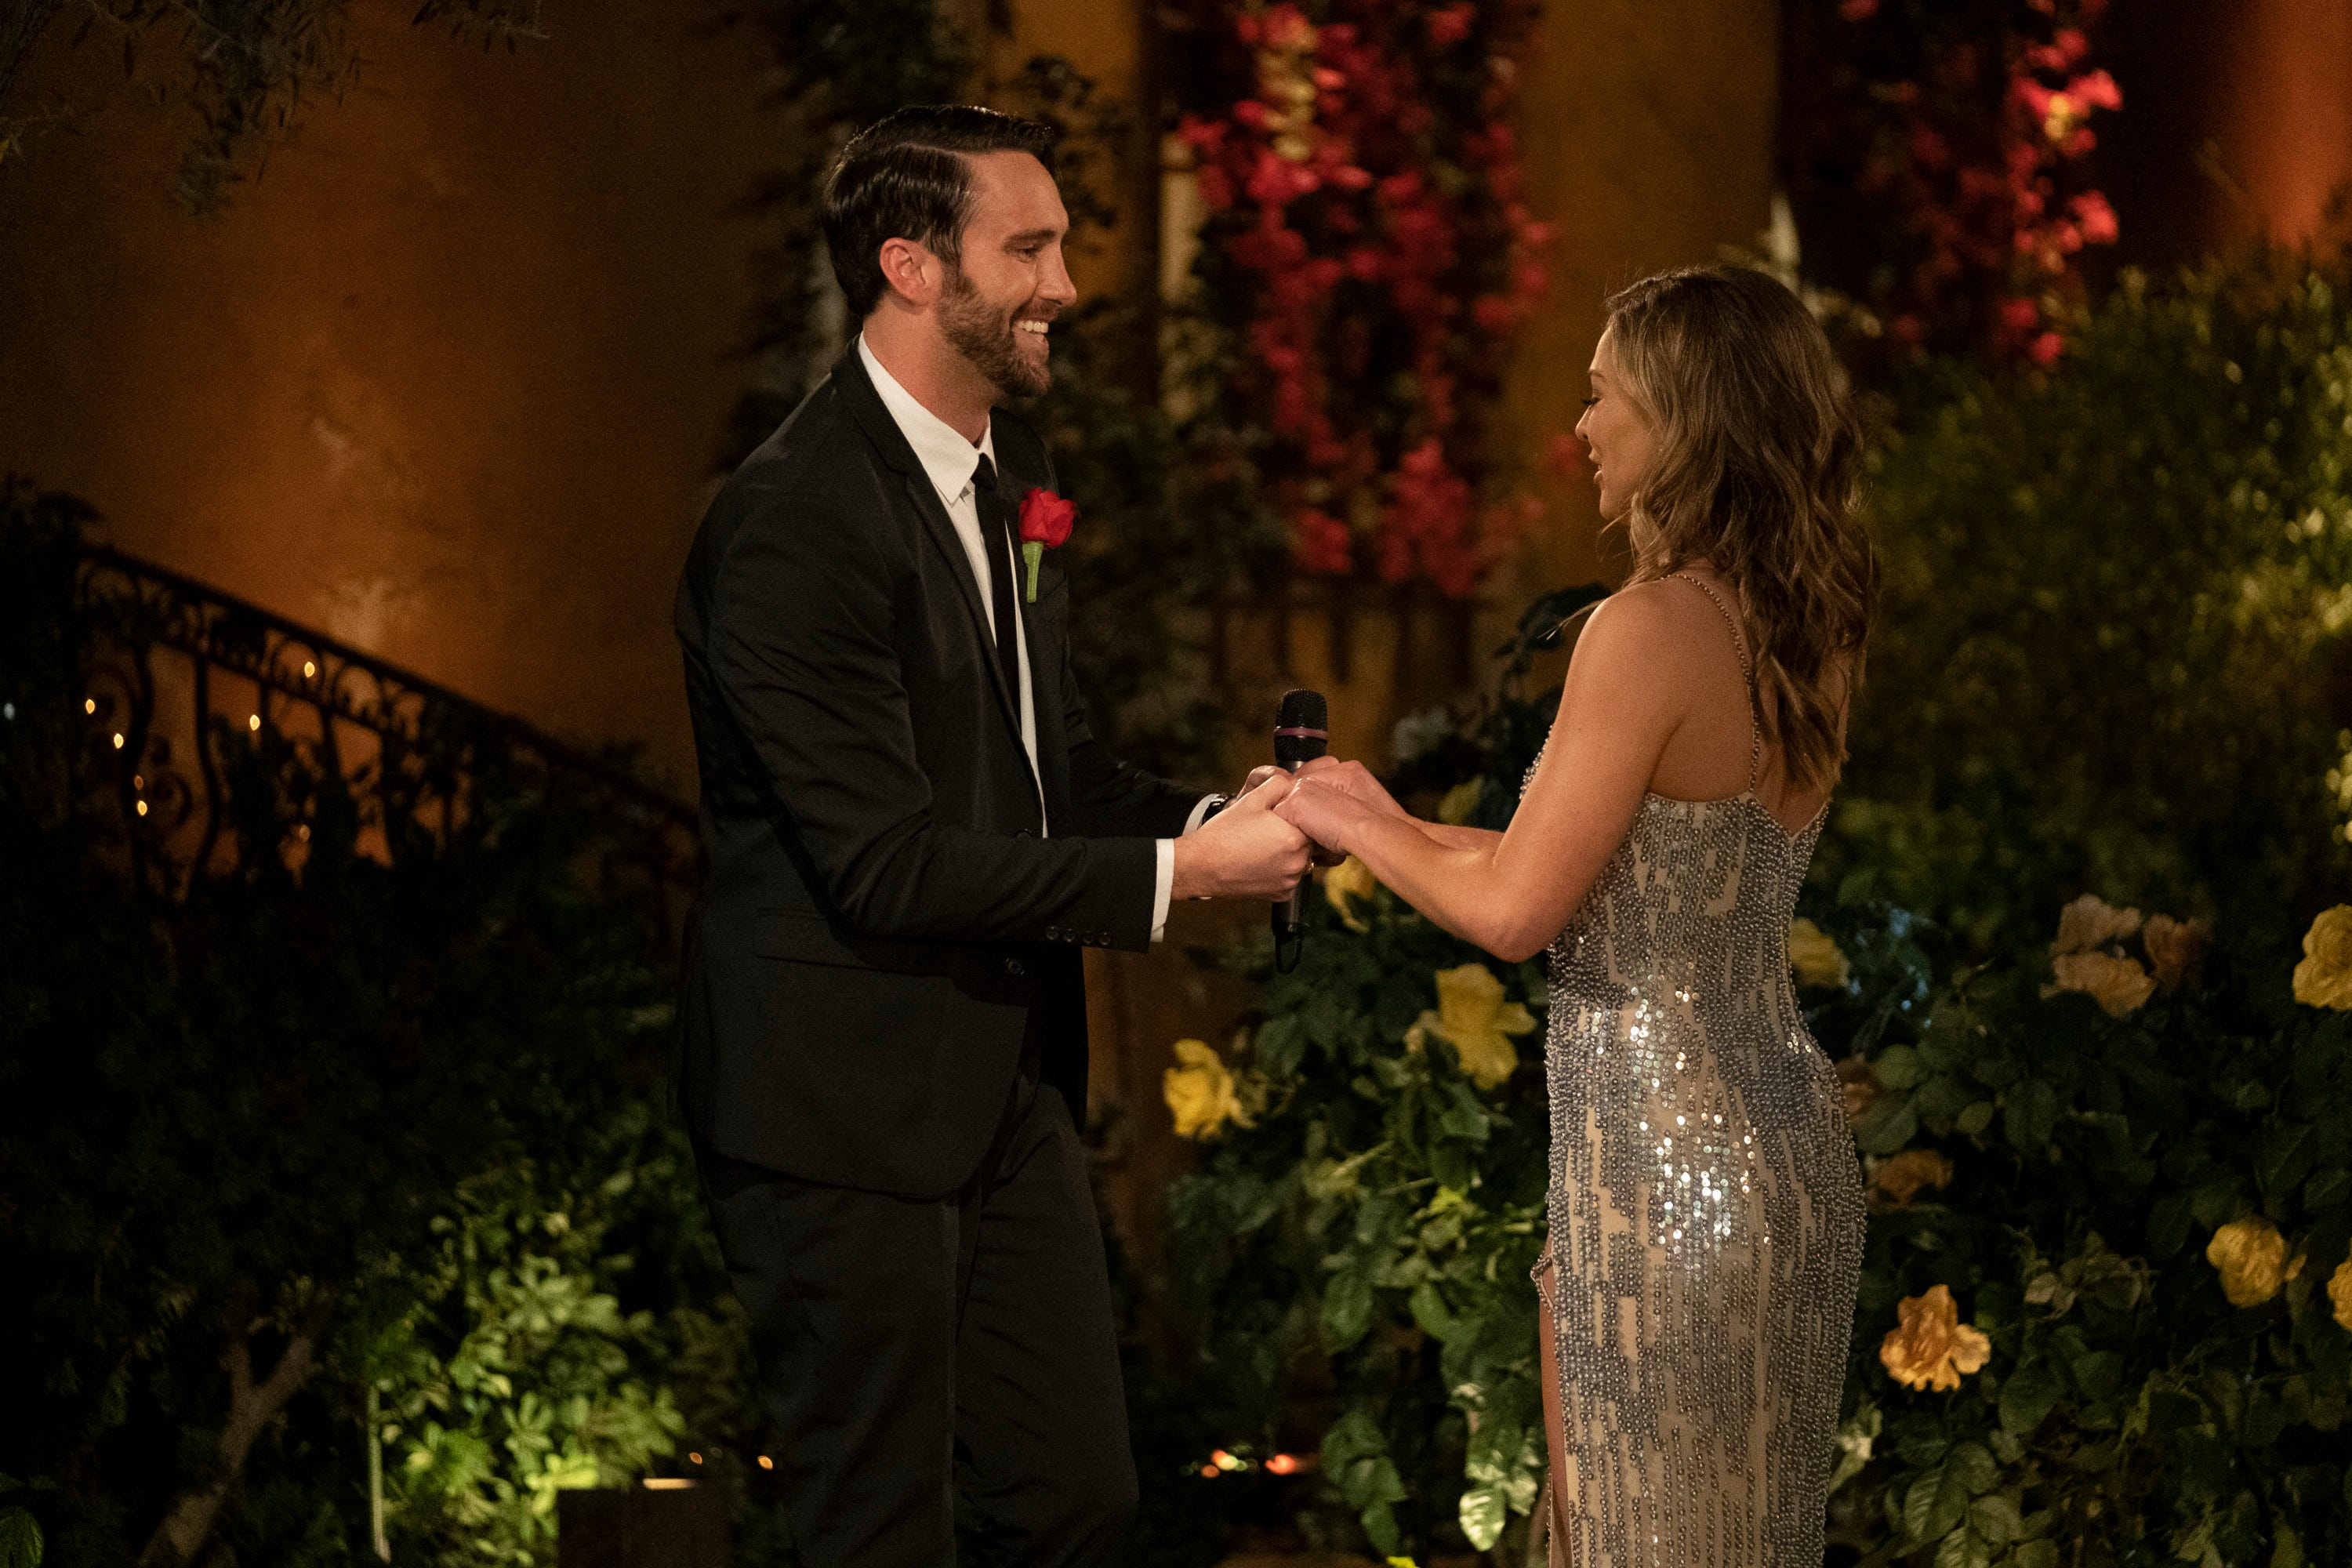 Bachelorette Episode 3 Recap - Cam Shoots His Shot